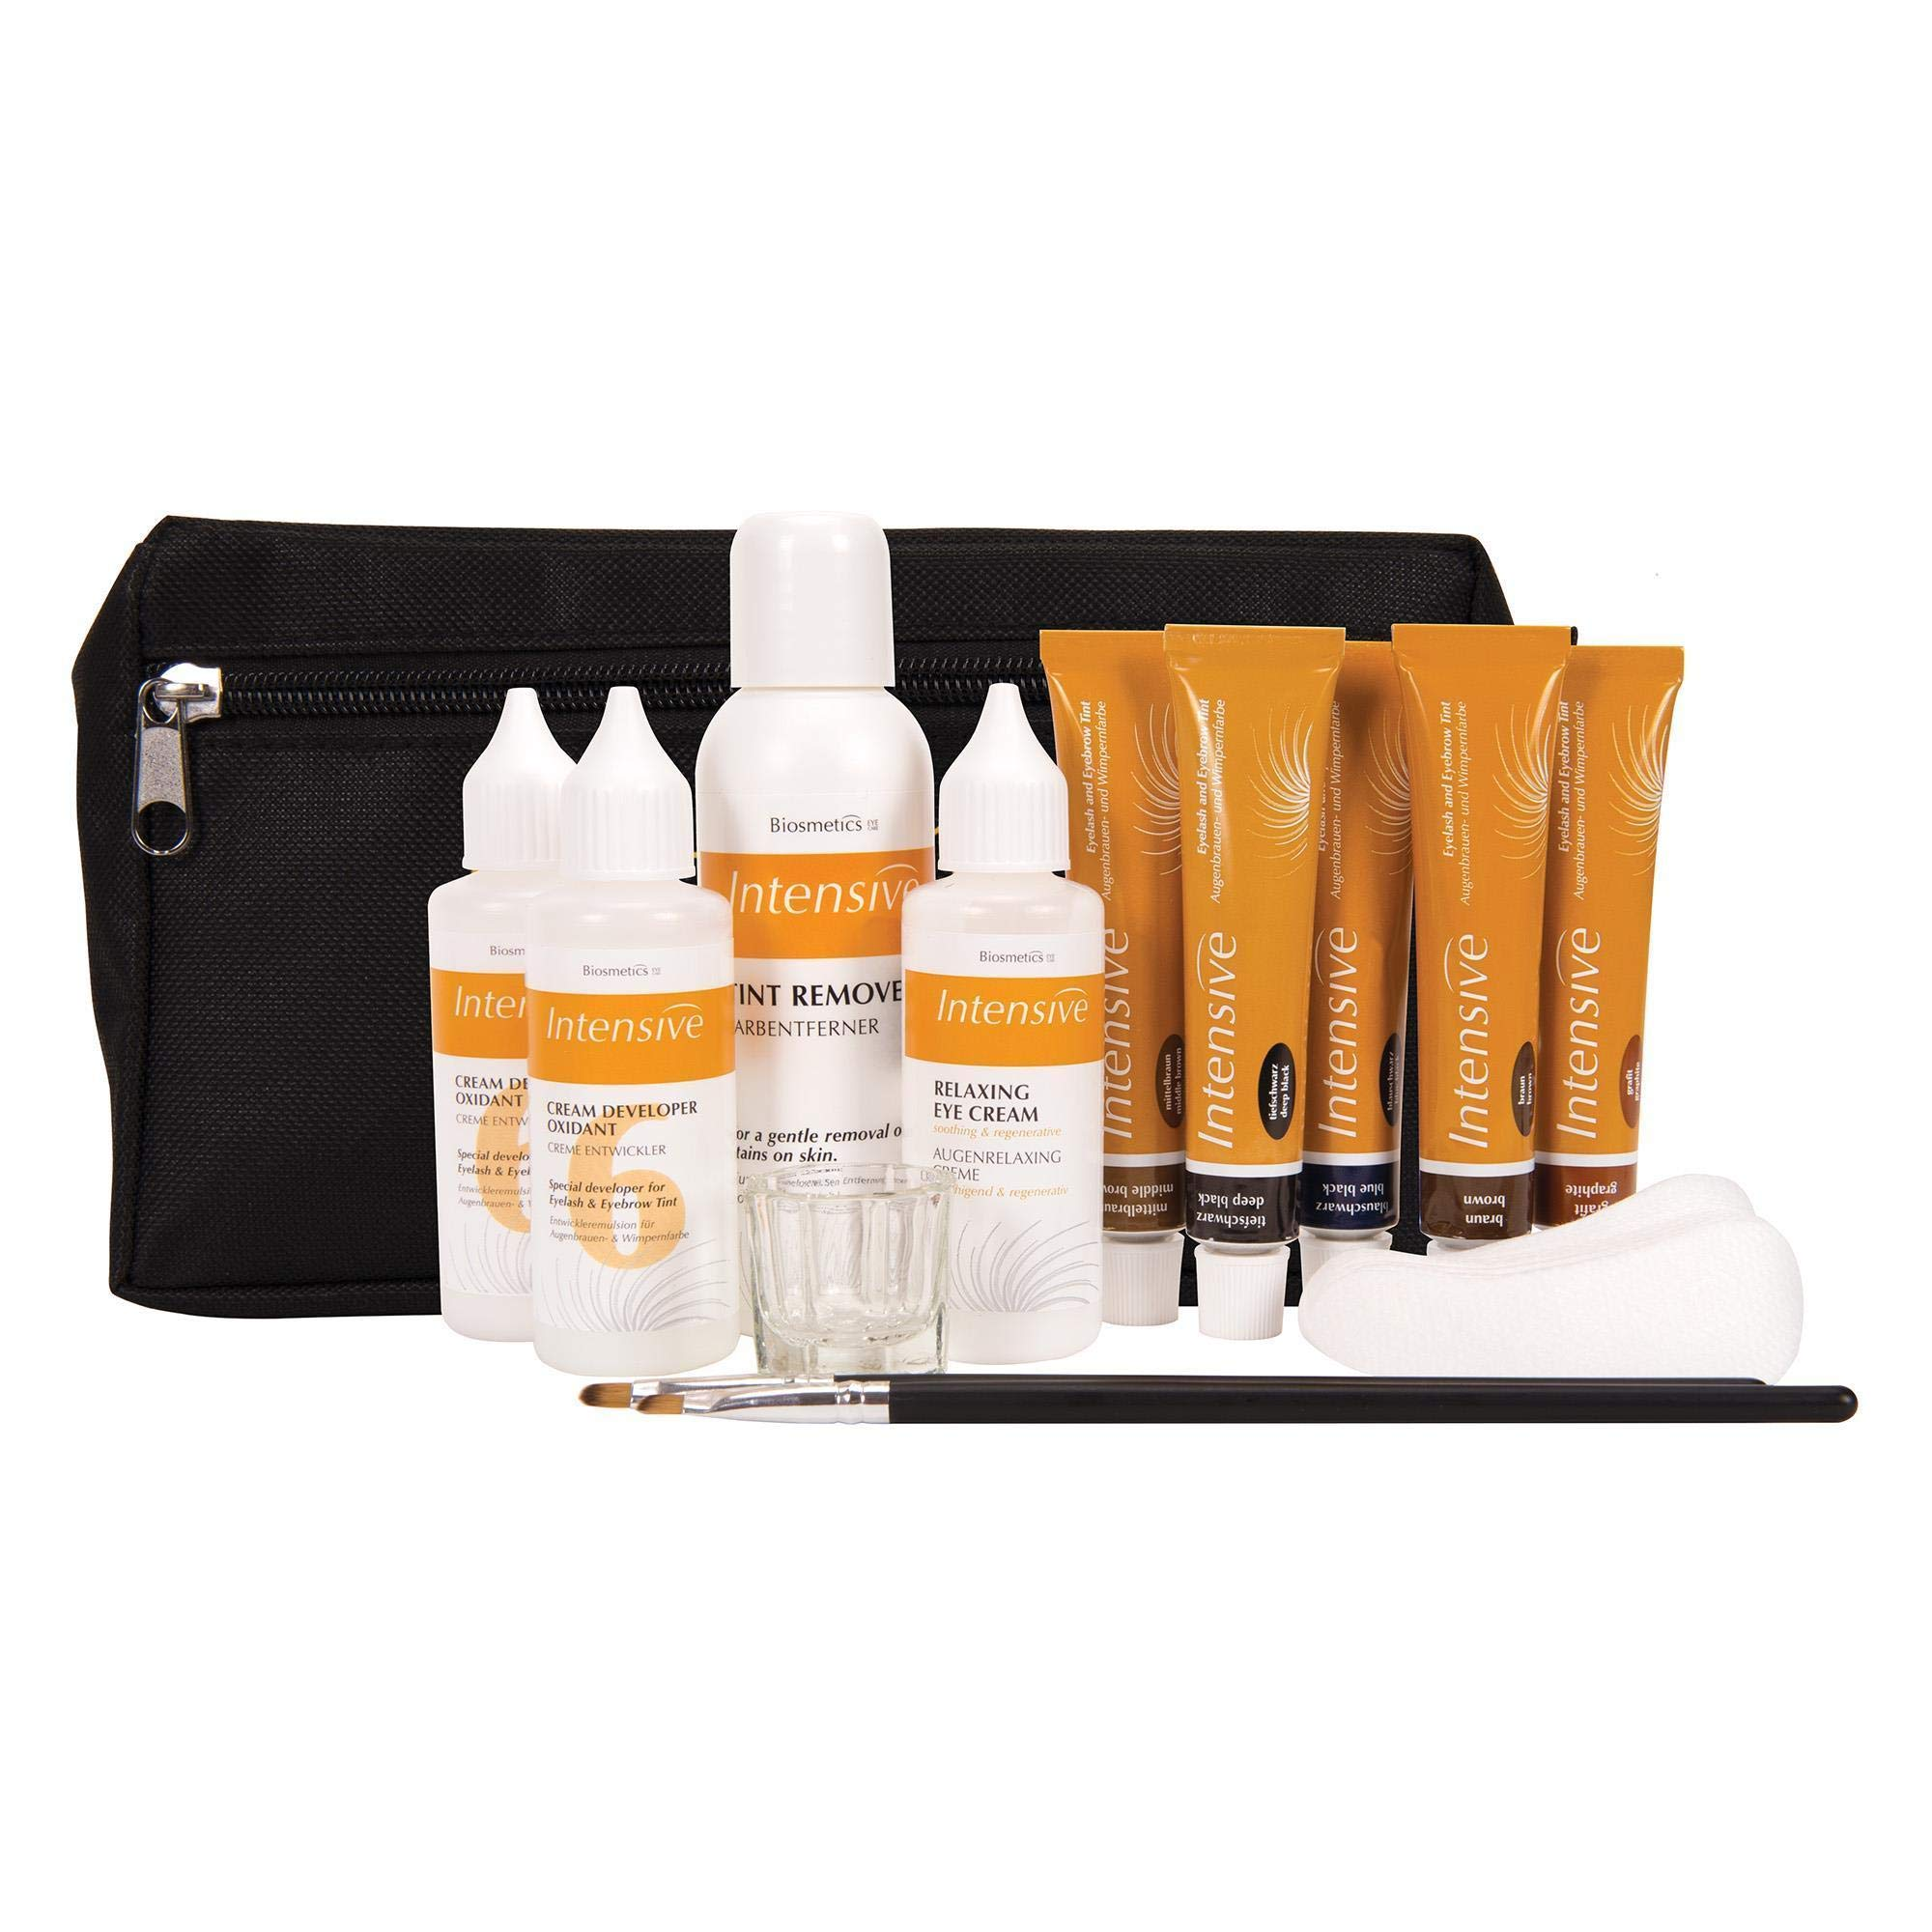 Intensive Lash & Brow Tinting Professional Kit | Trusted Professional Formula | Provides 150 Services